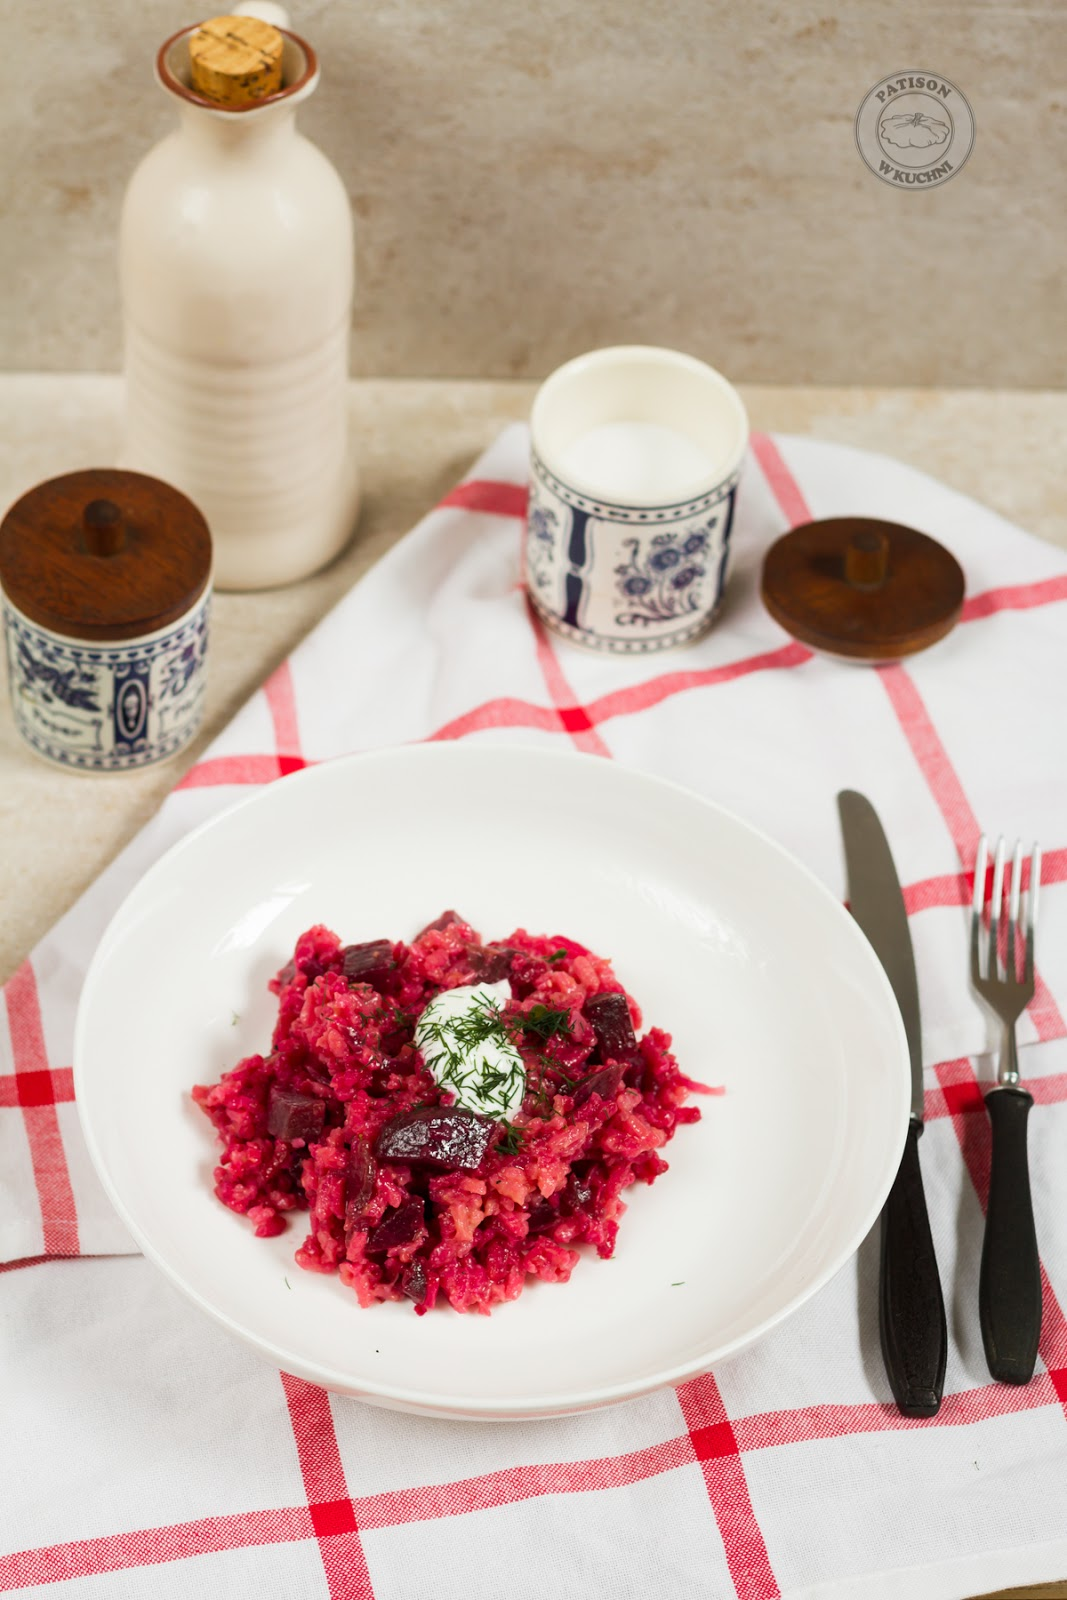 Beetroot risotto.